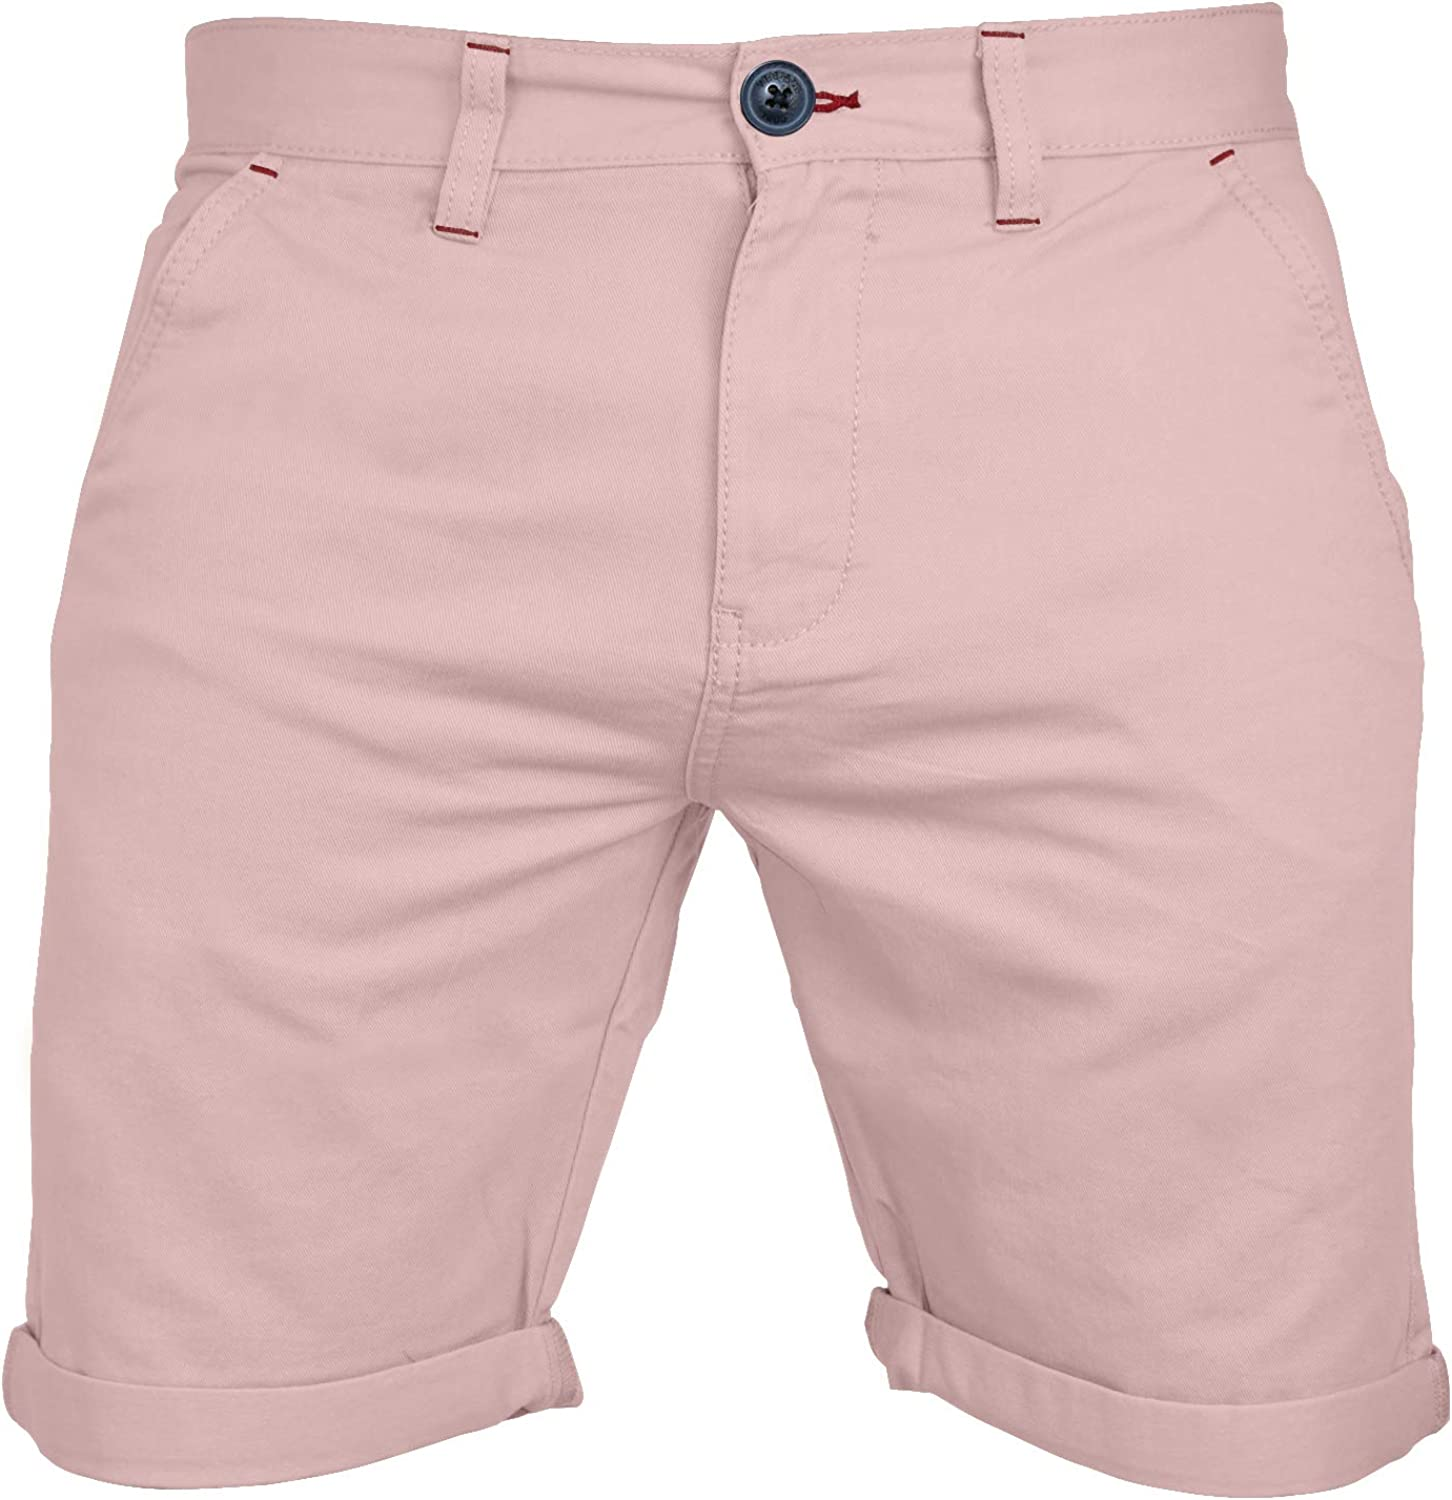 Super popular specialty store westAce Mens Stretch Chino Shorts Casual Flat Max 41% OFF Front Slim Gol Fit